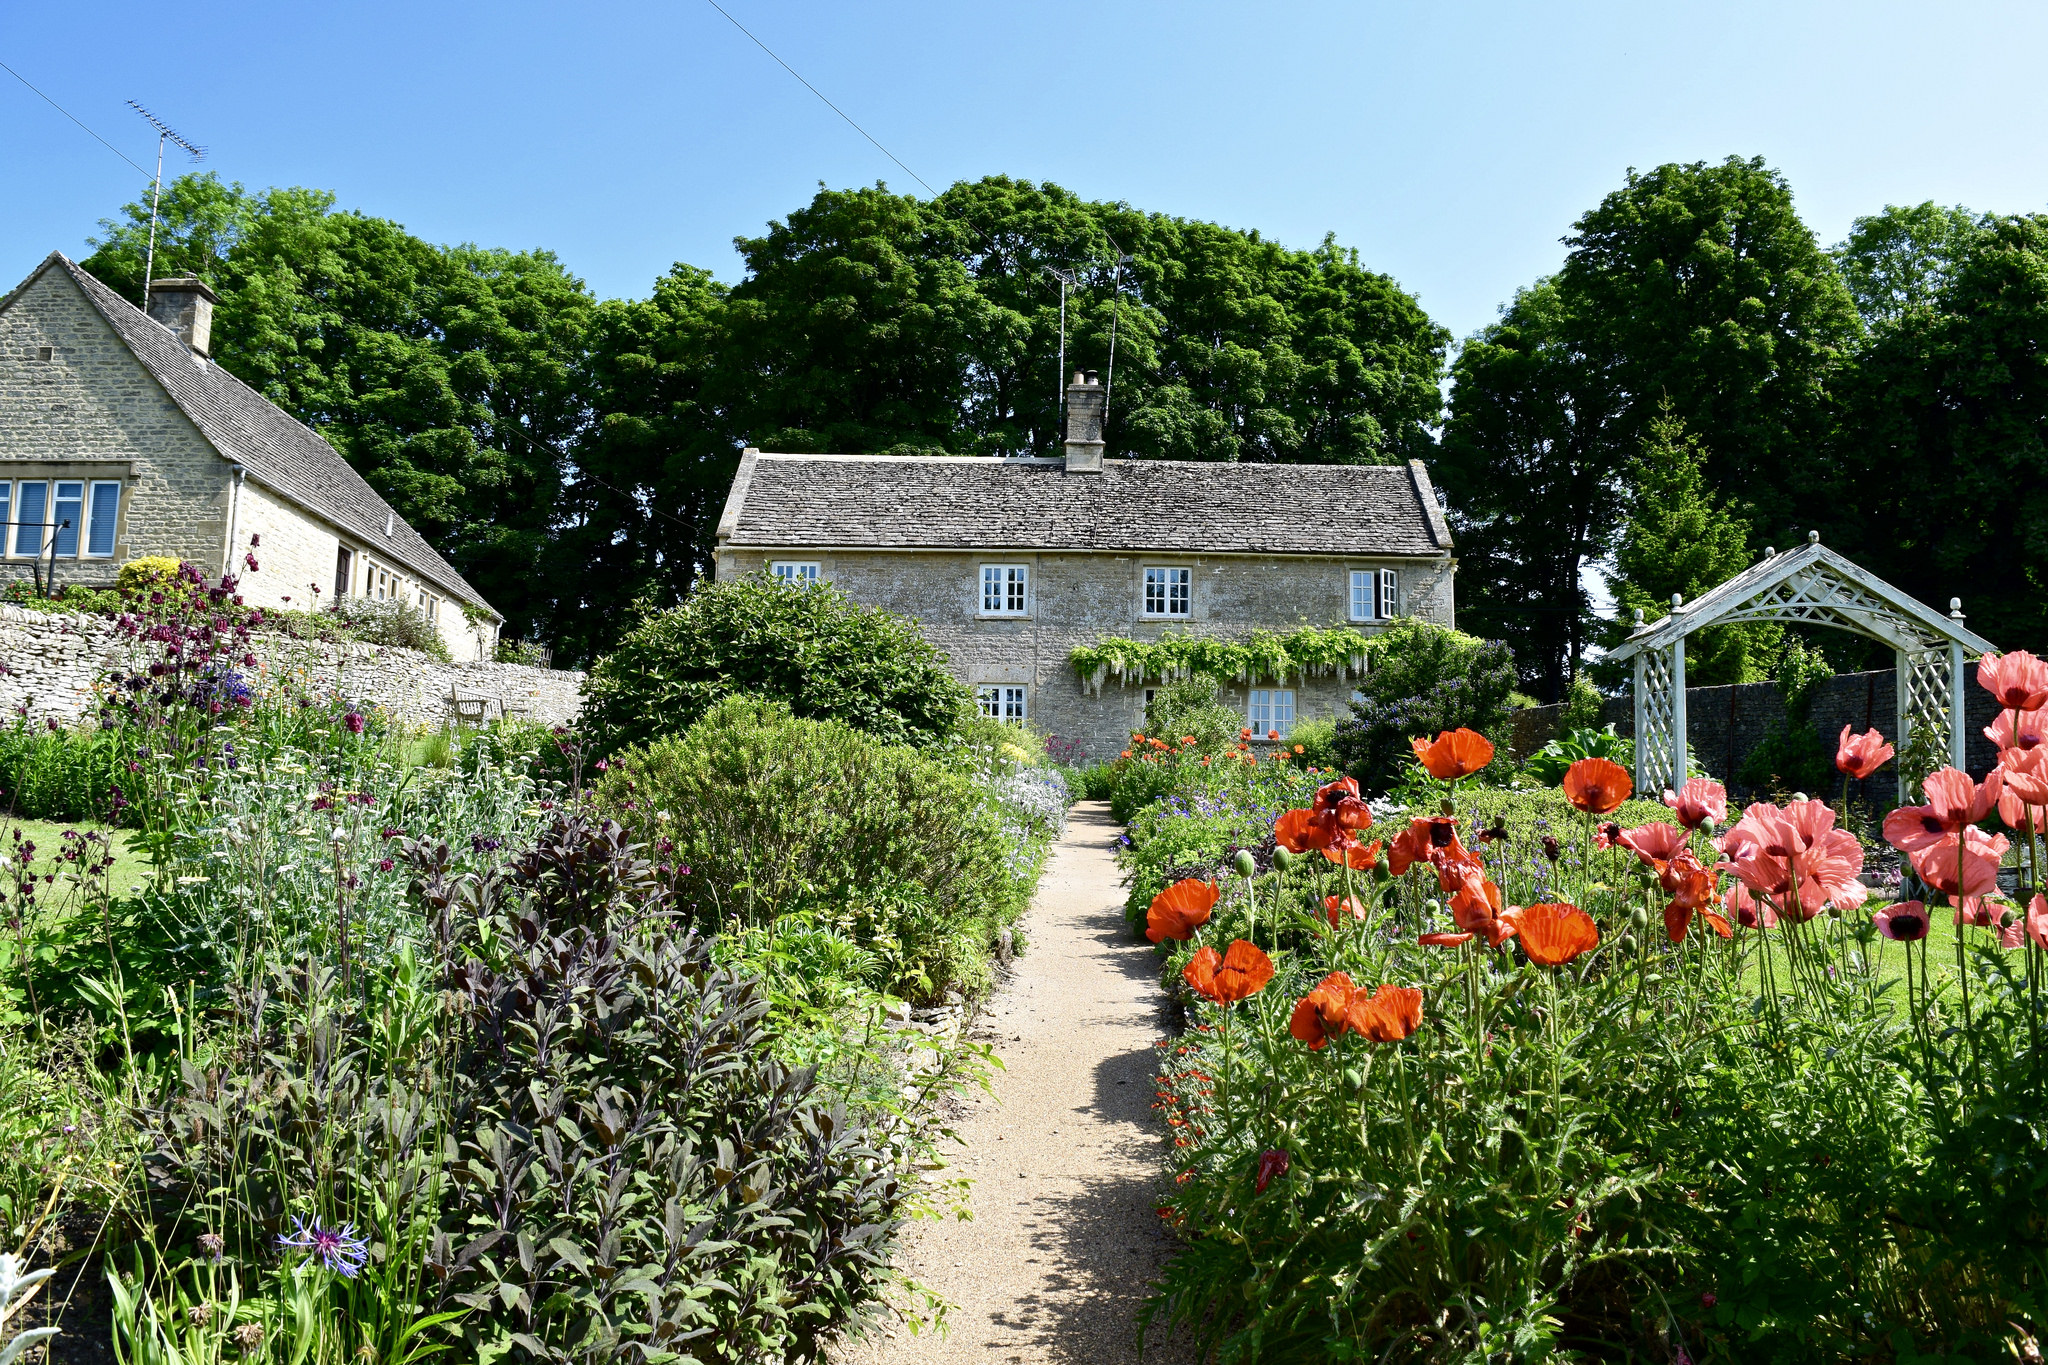 Our B&B in Ablington with beautiful gardens